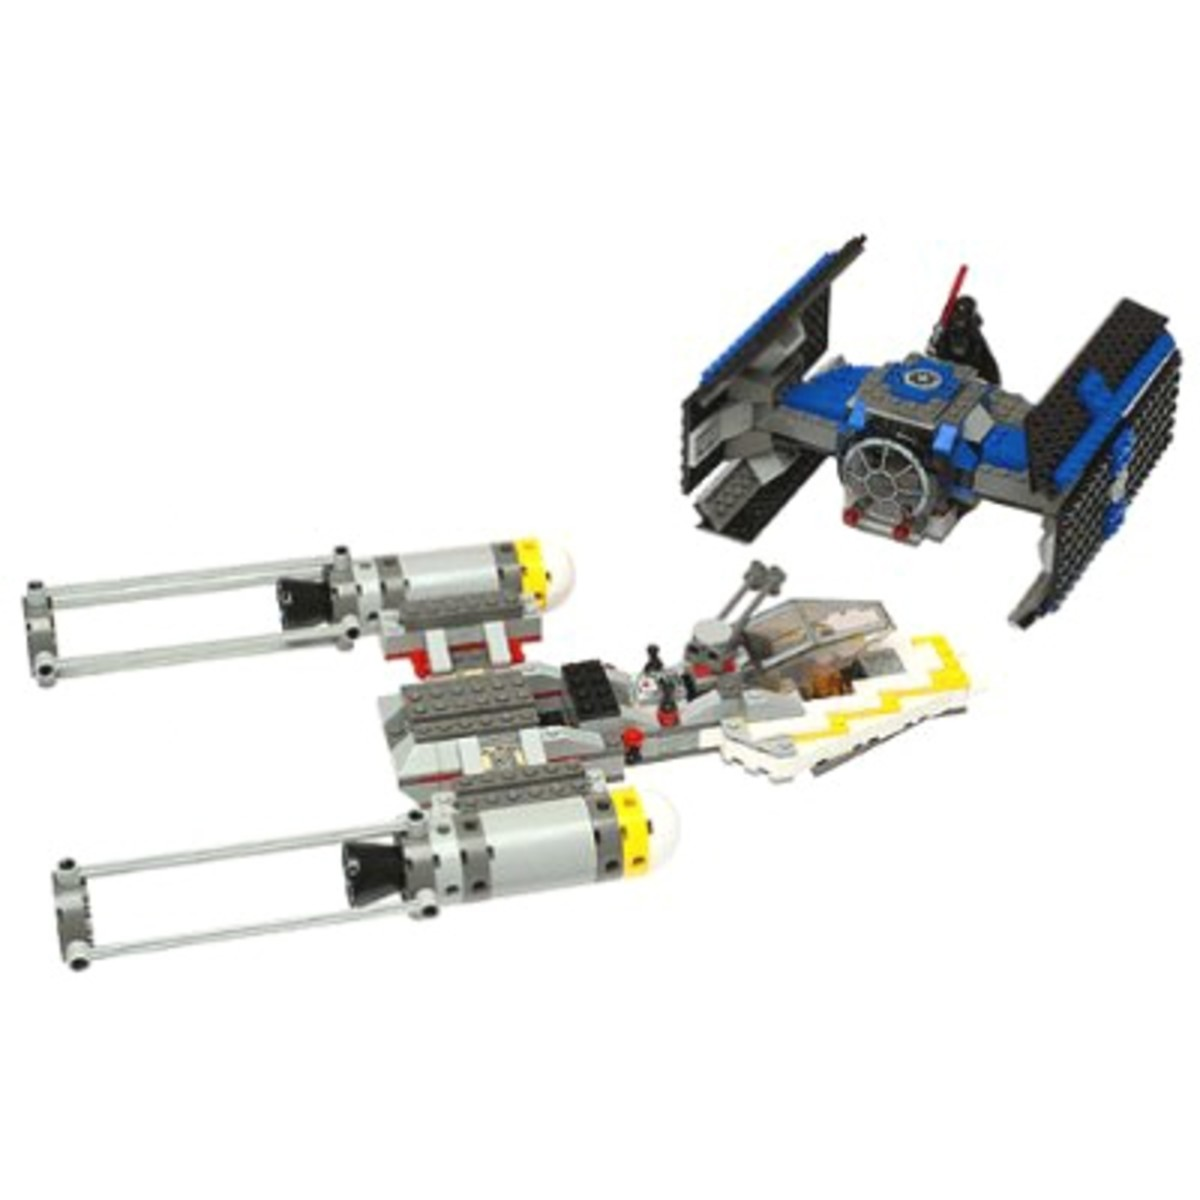 LEGO Star Wars Tie Fighter & Y-Wing 7152 Assembled